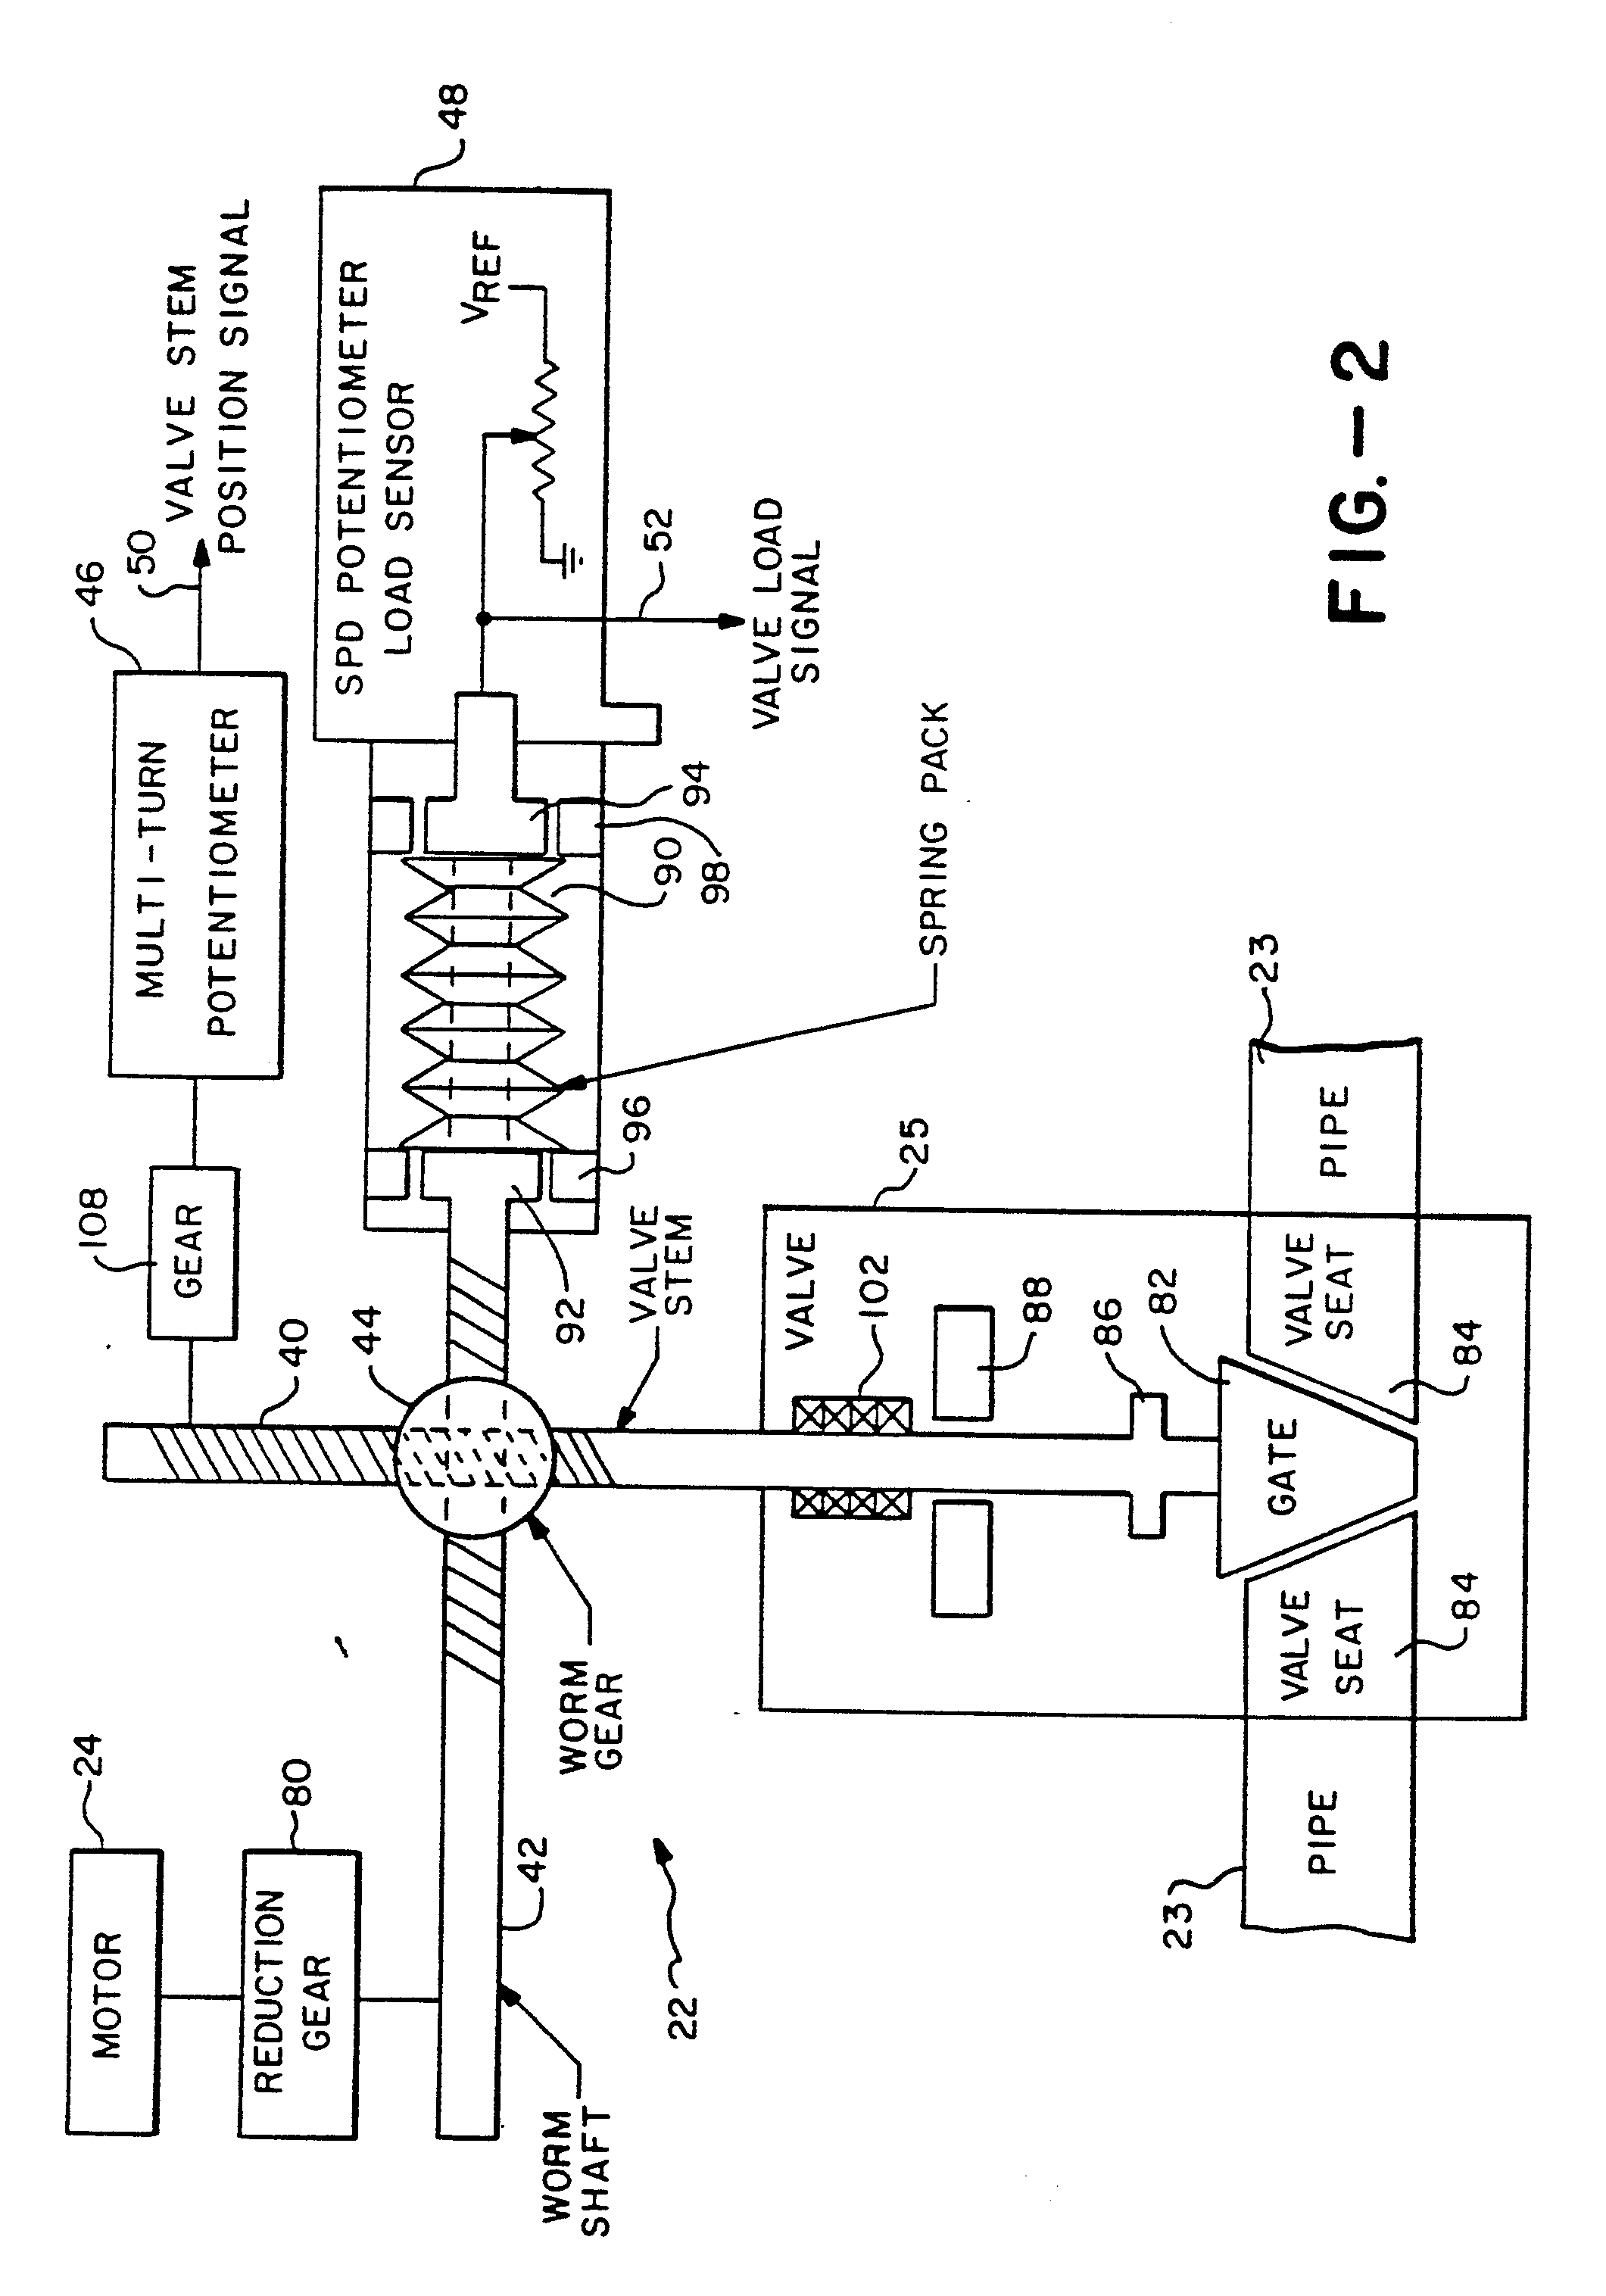 imgf0002 patent ep0287299a2 microprocessor based control and diagnostic motor operated valve wiring diagram at gsmportal.co